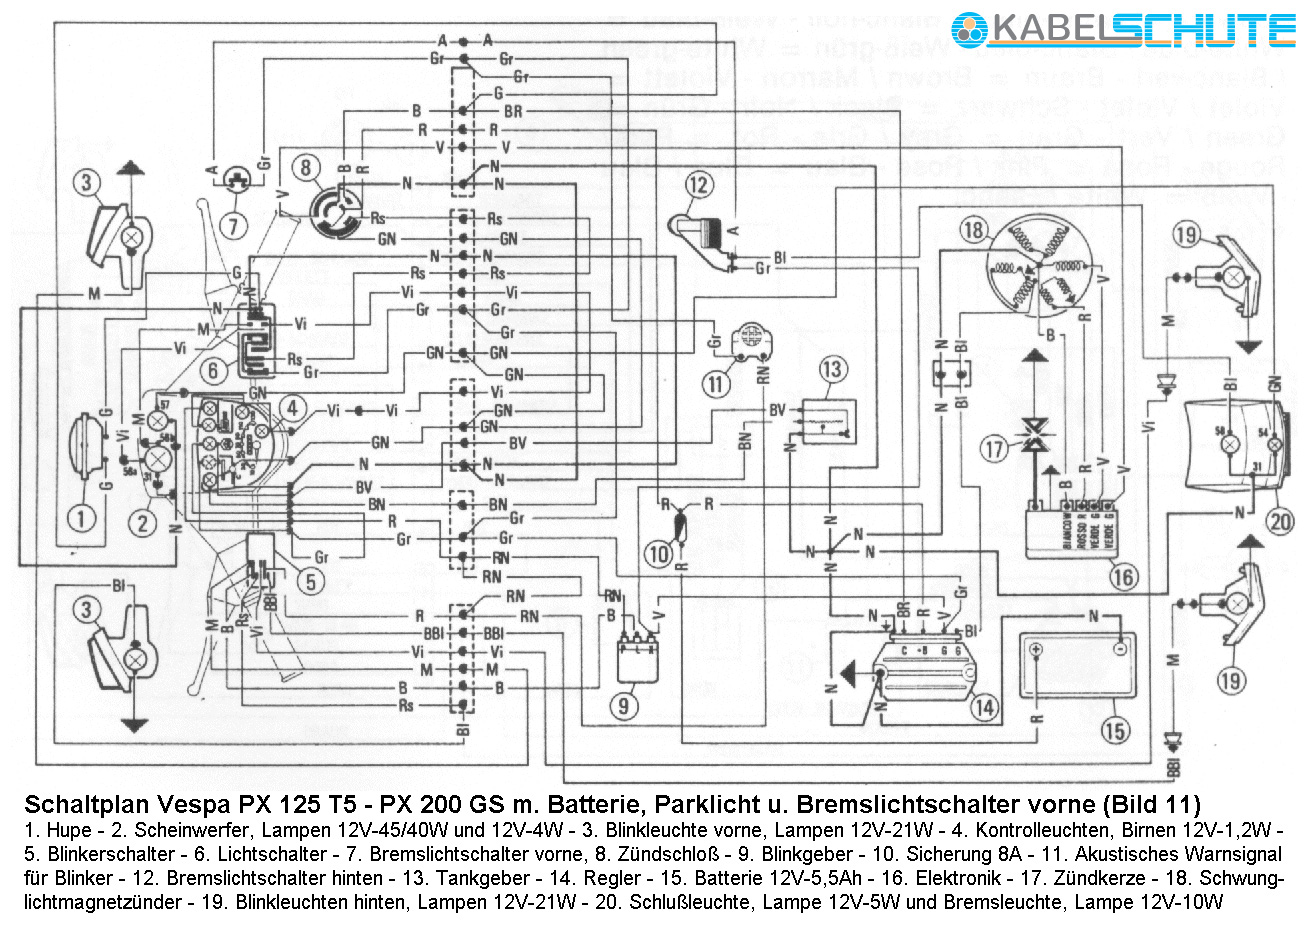 hight resolution of vespa px 200 wiring diagram 27 wiring diagram images wiring diagram vespa 50 special wiring diagram vespa px 200